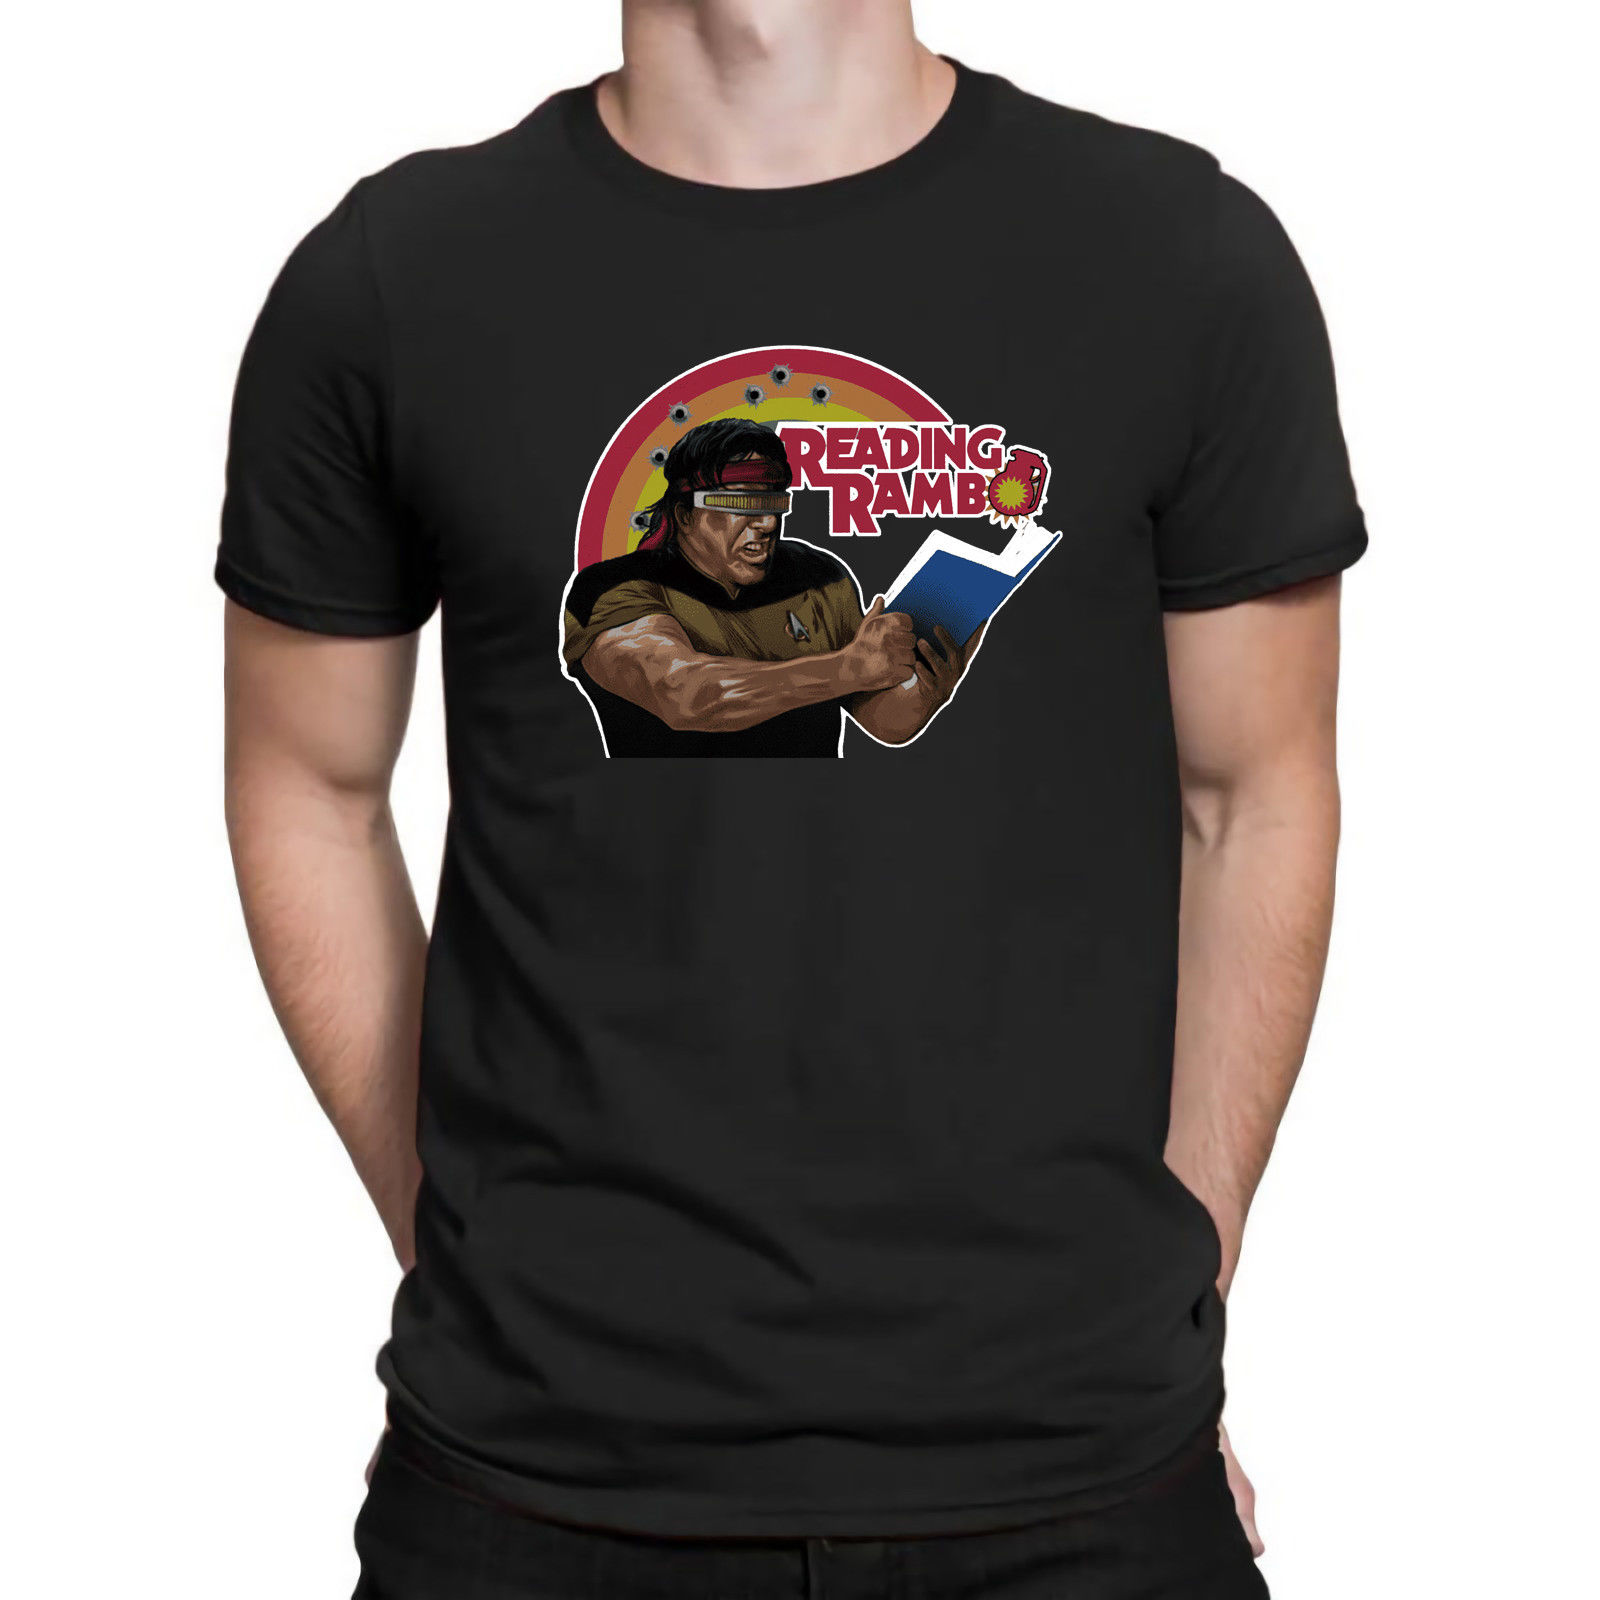 2019 Fashion Stallone Reading Rambo Funny Inspired Parody Movie T Shirt Cotton Black Navy Tee Unisex Tee image